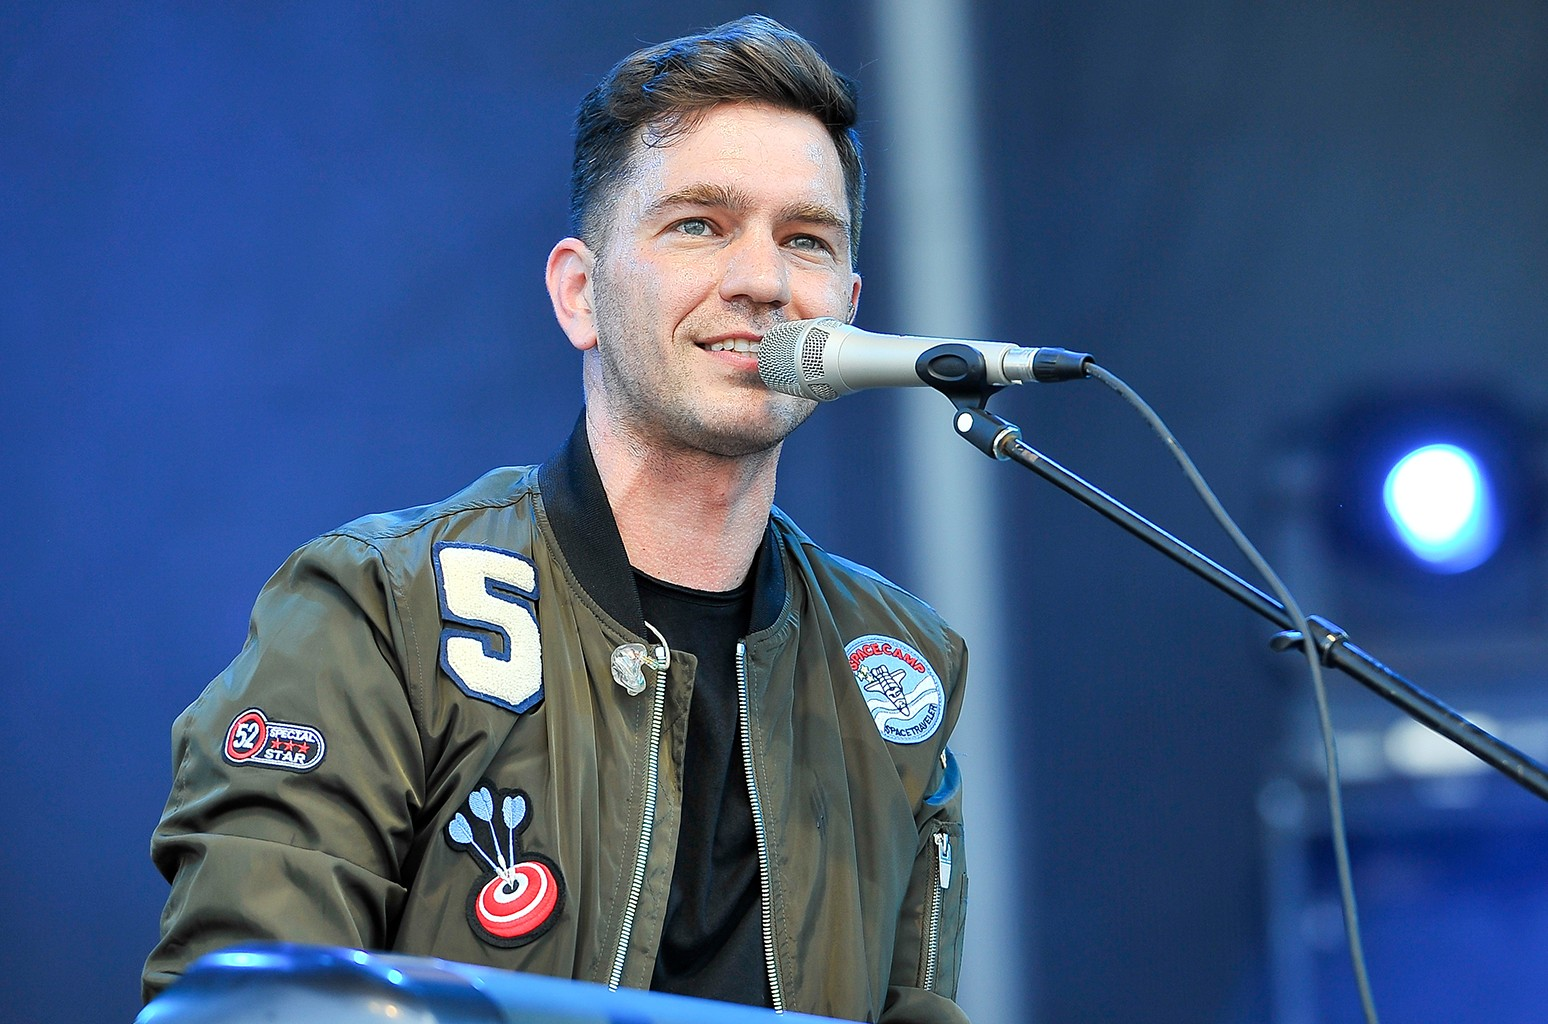 Andy Grammer performs in 2016